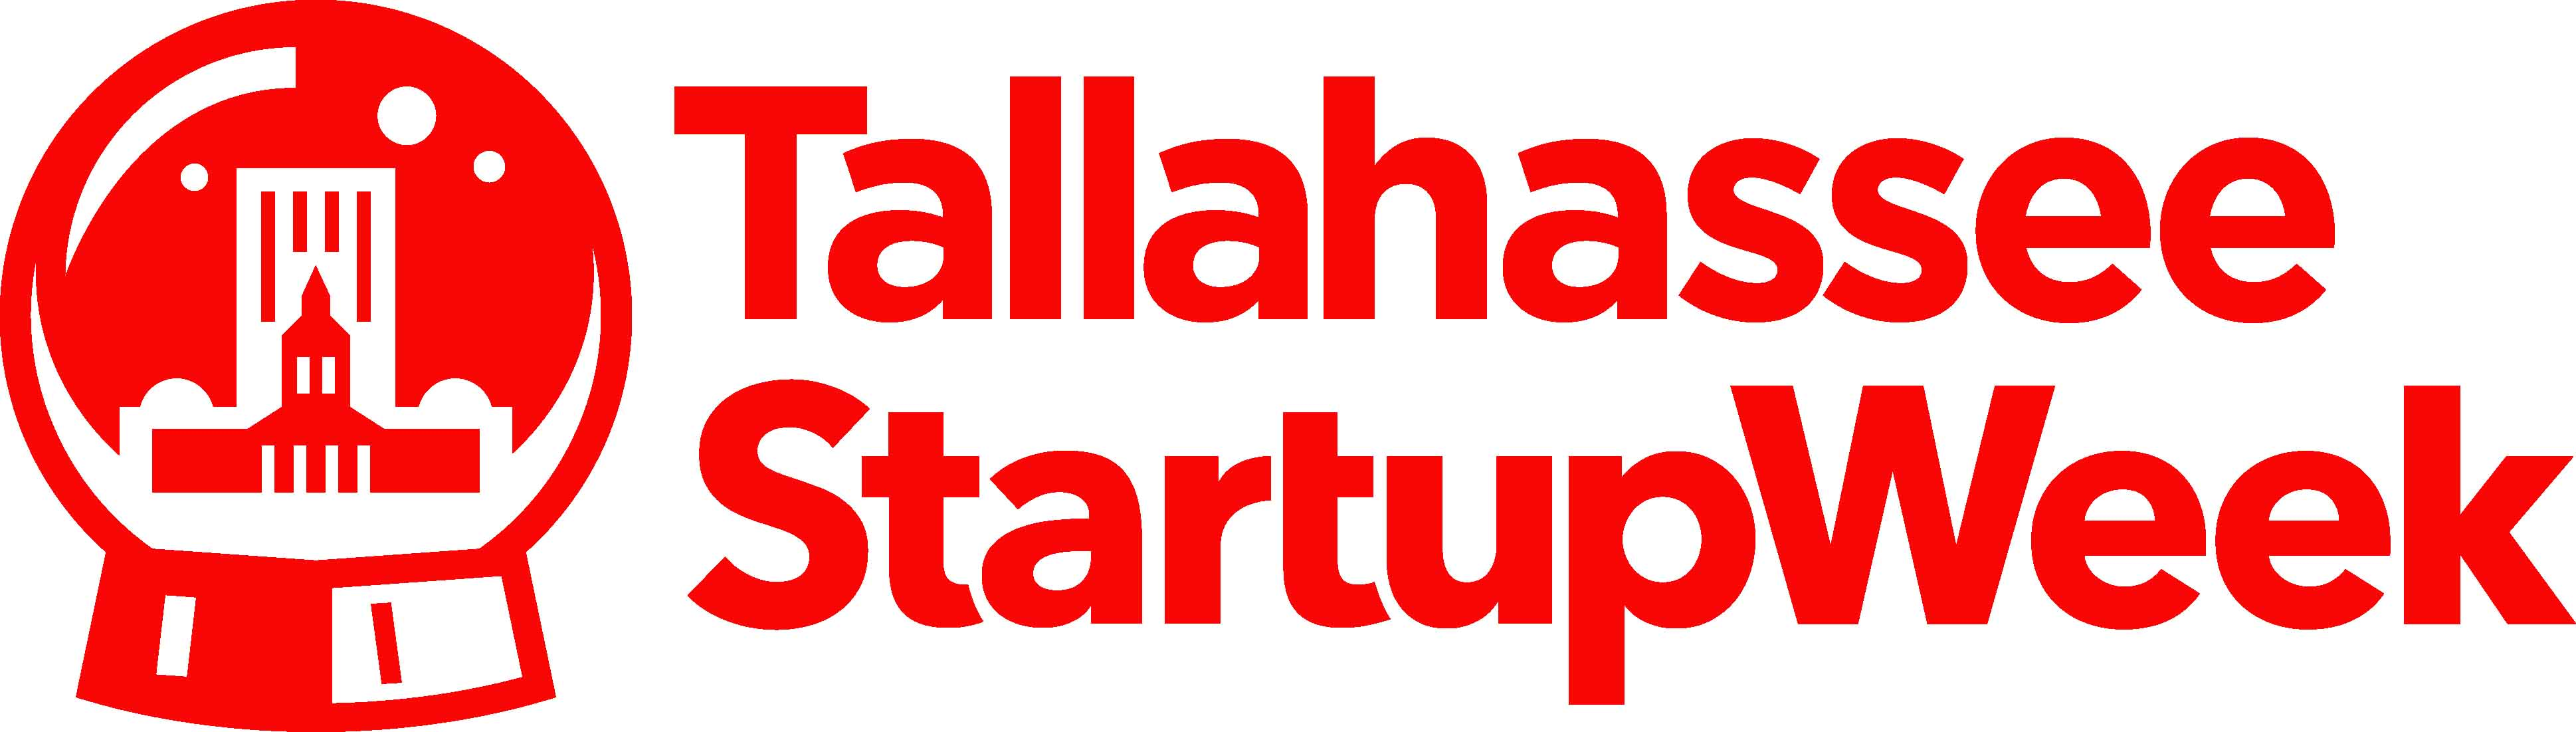 Tallahassee Startup Week is here